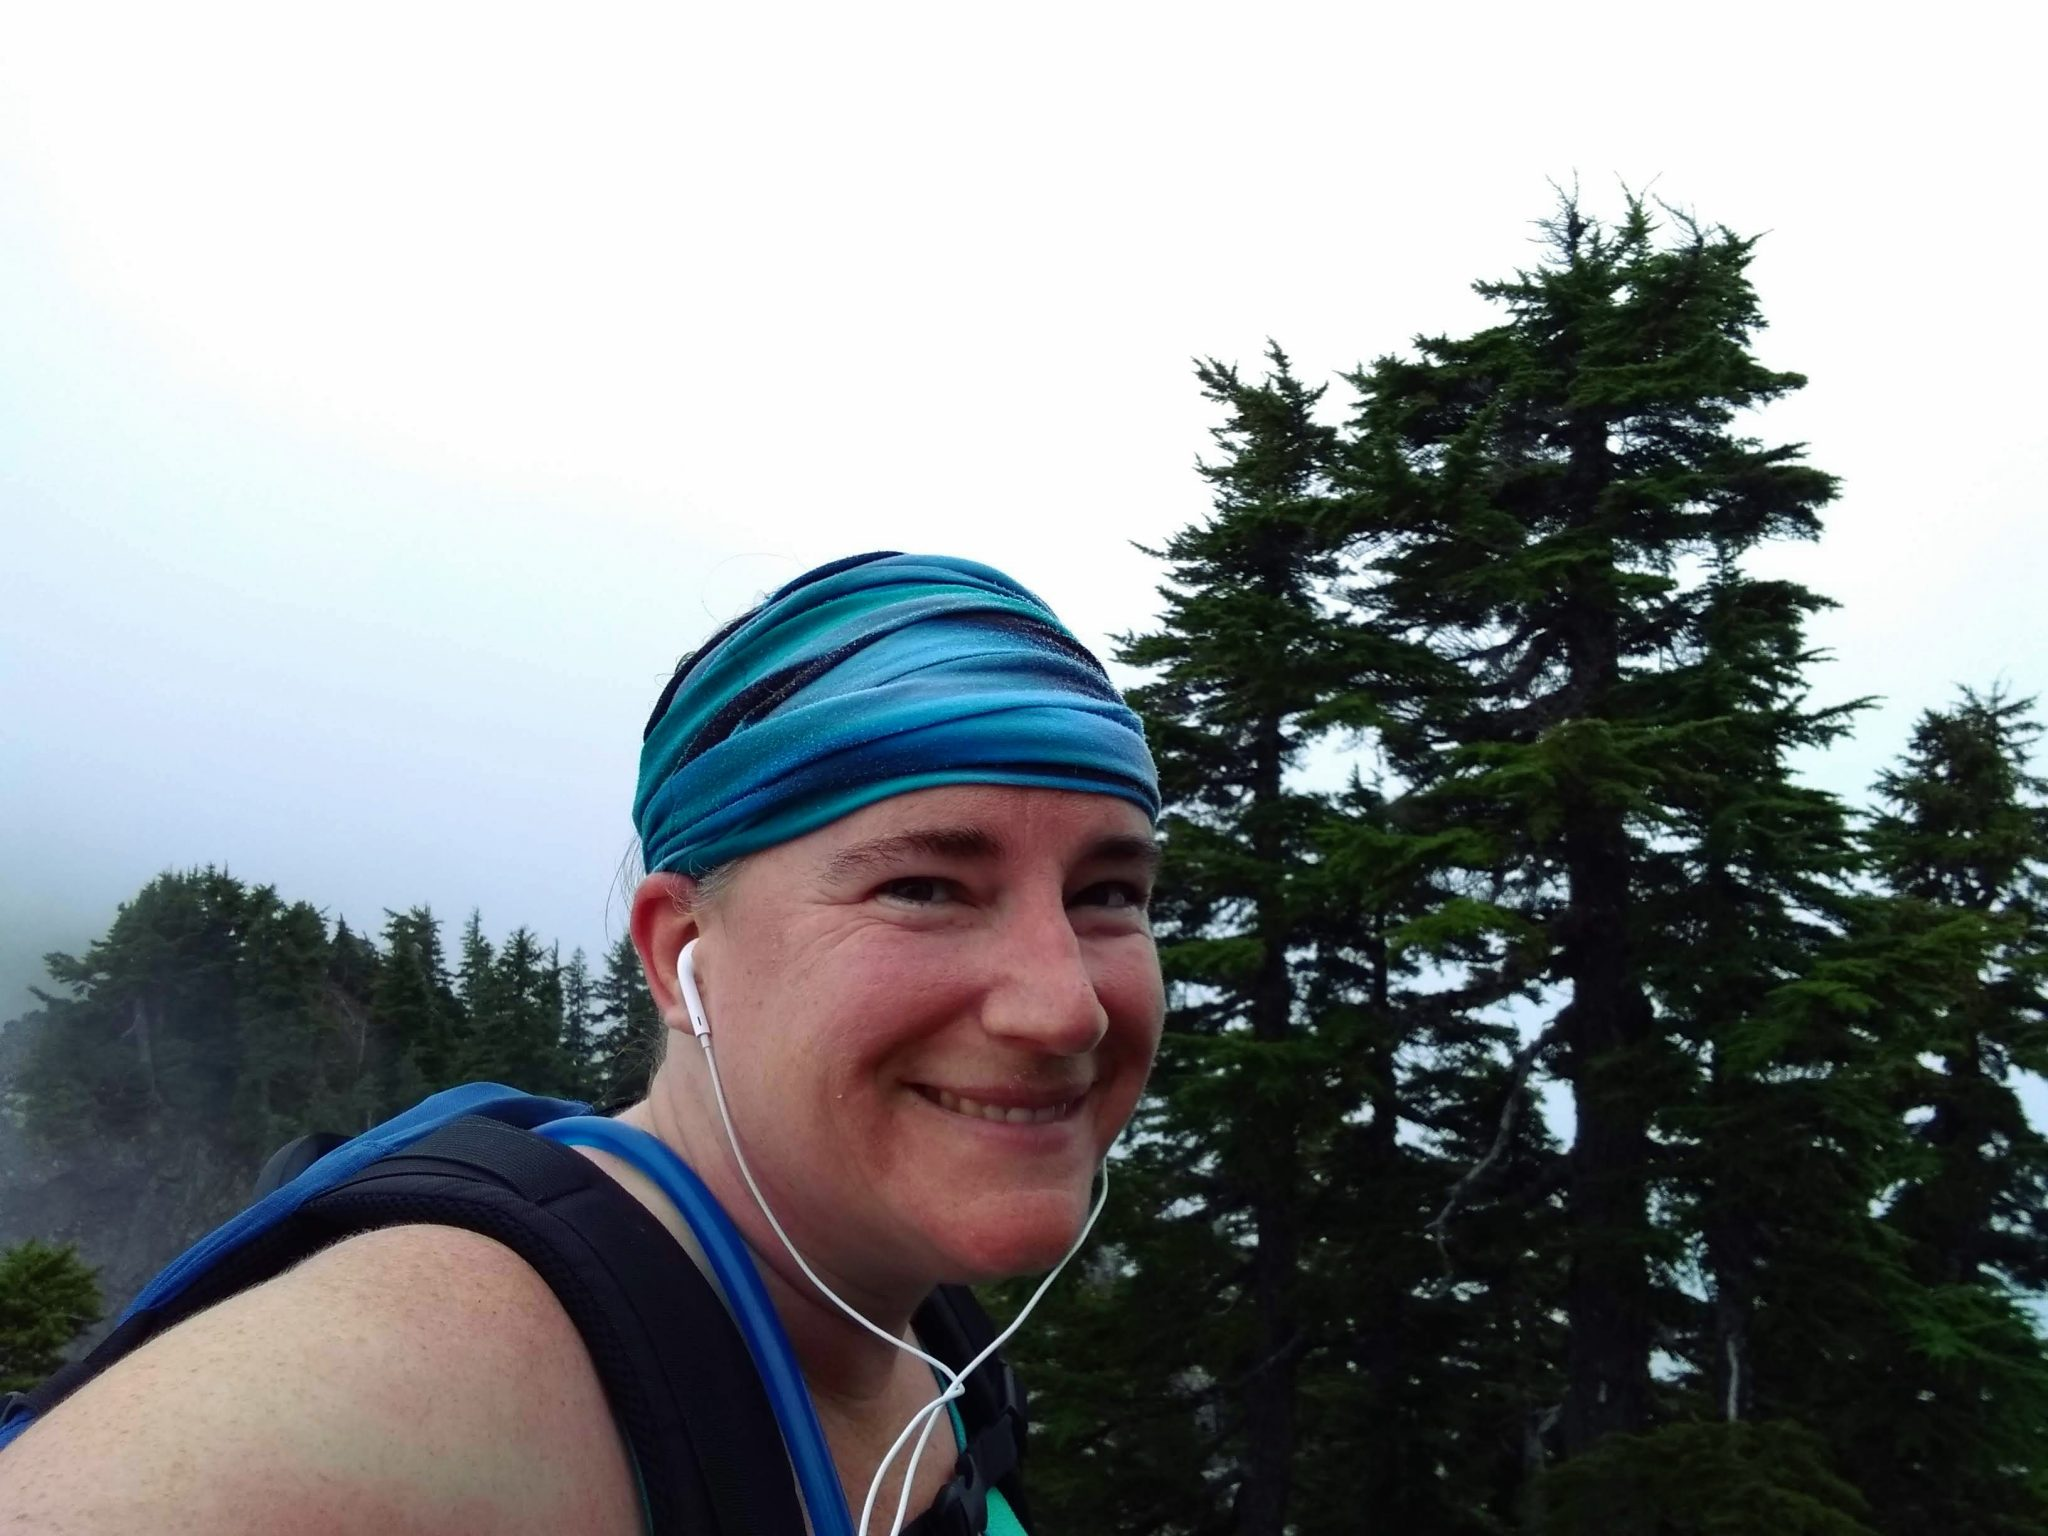 A smiling person on a mountain surrounded by trees in the fog. She is wearing white earbuds, a head wrap, tank top and a backpack.